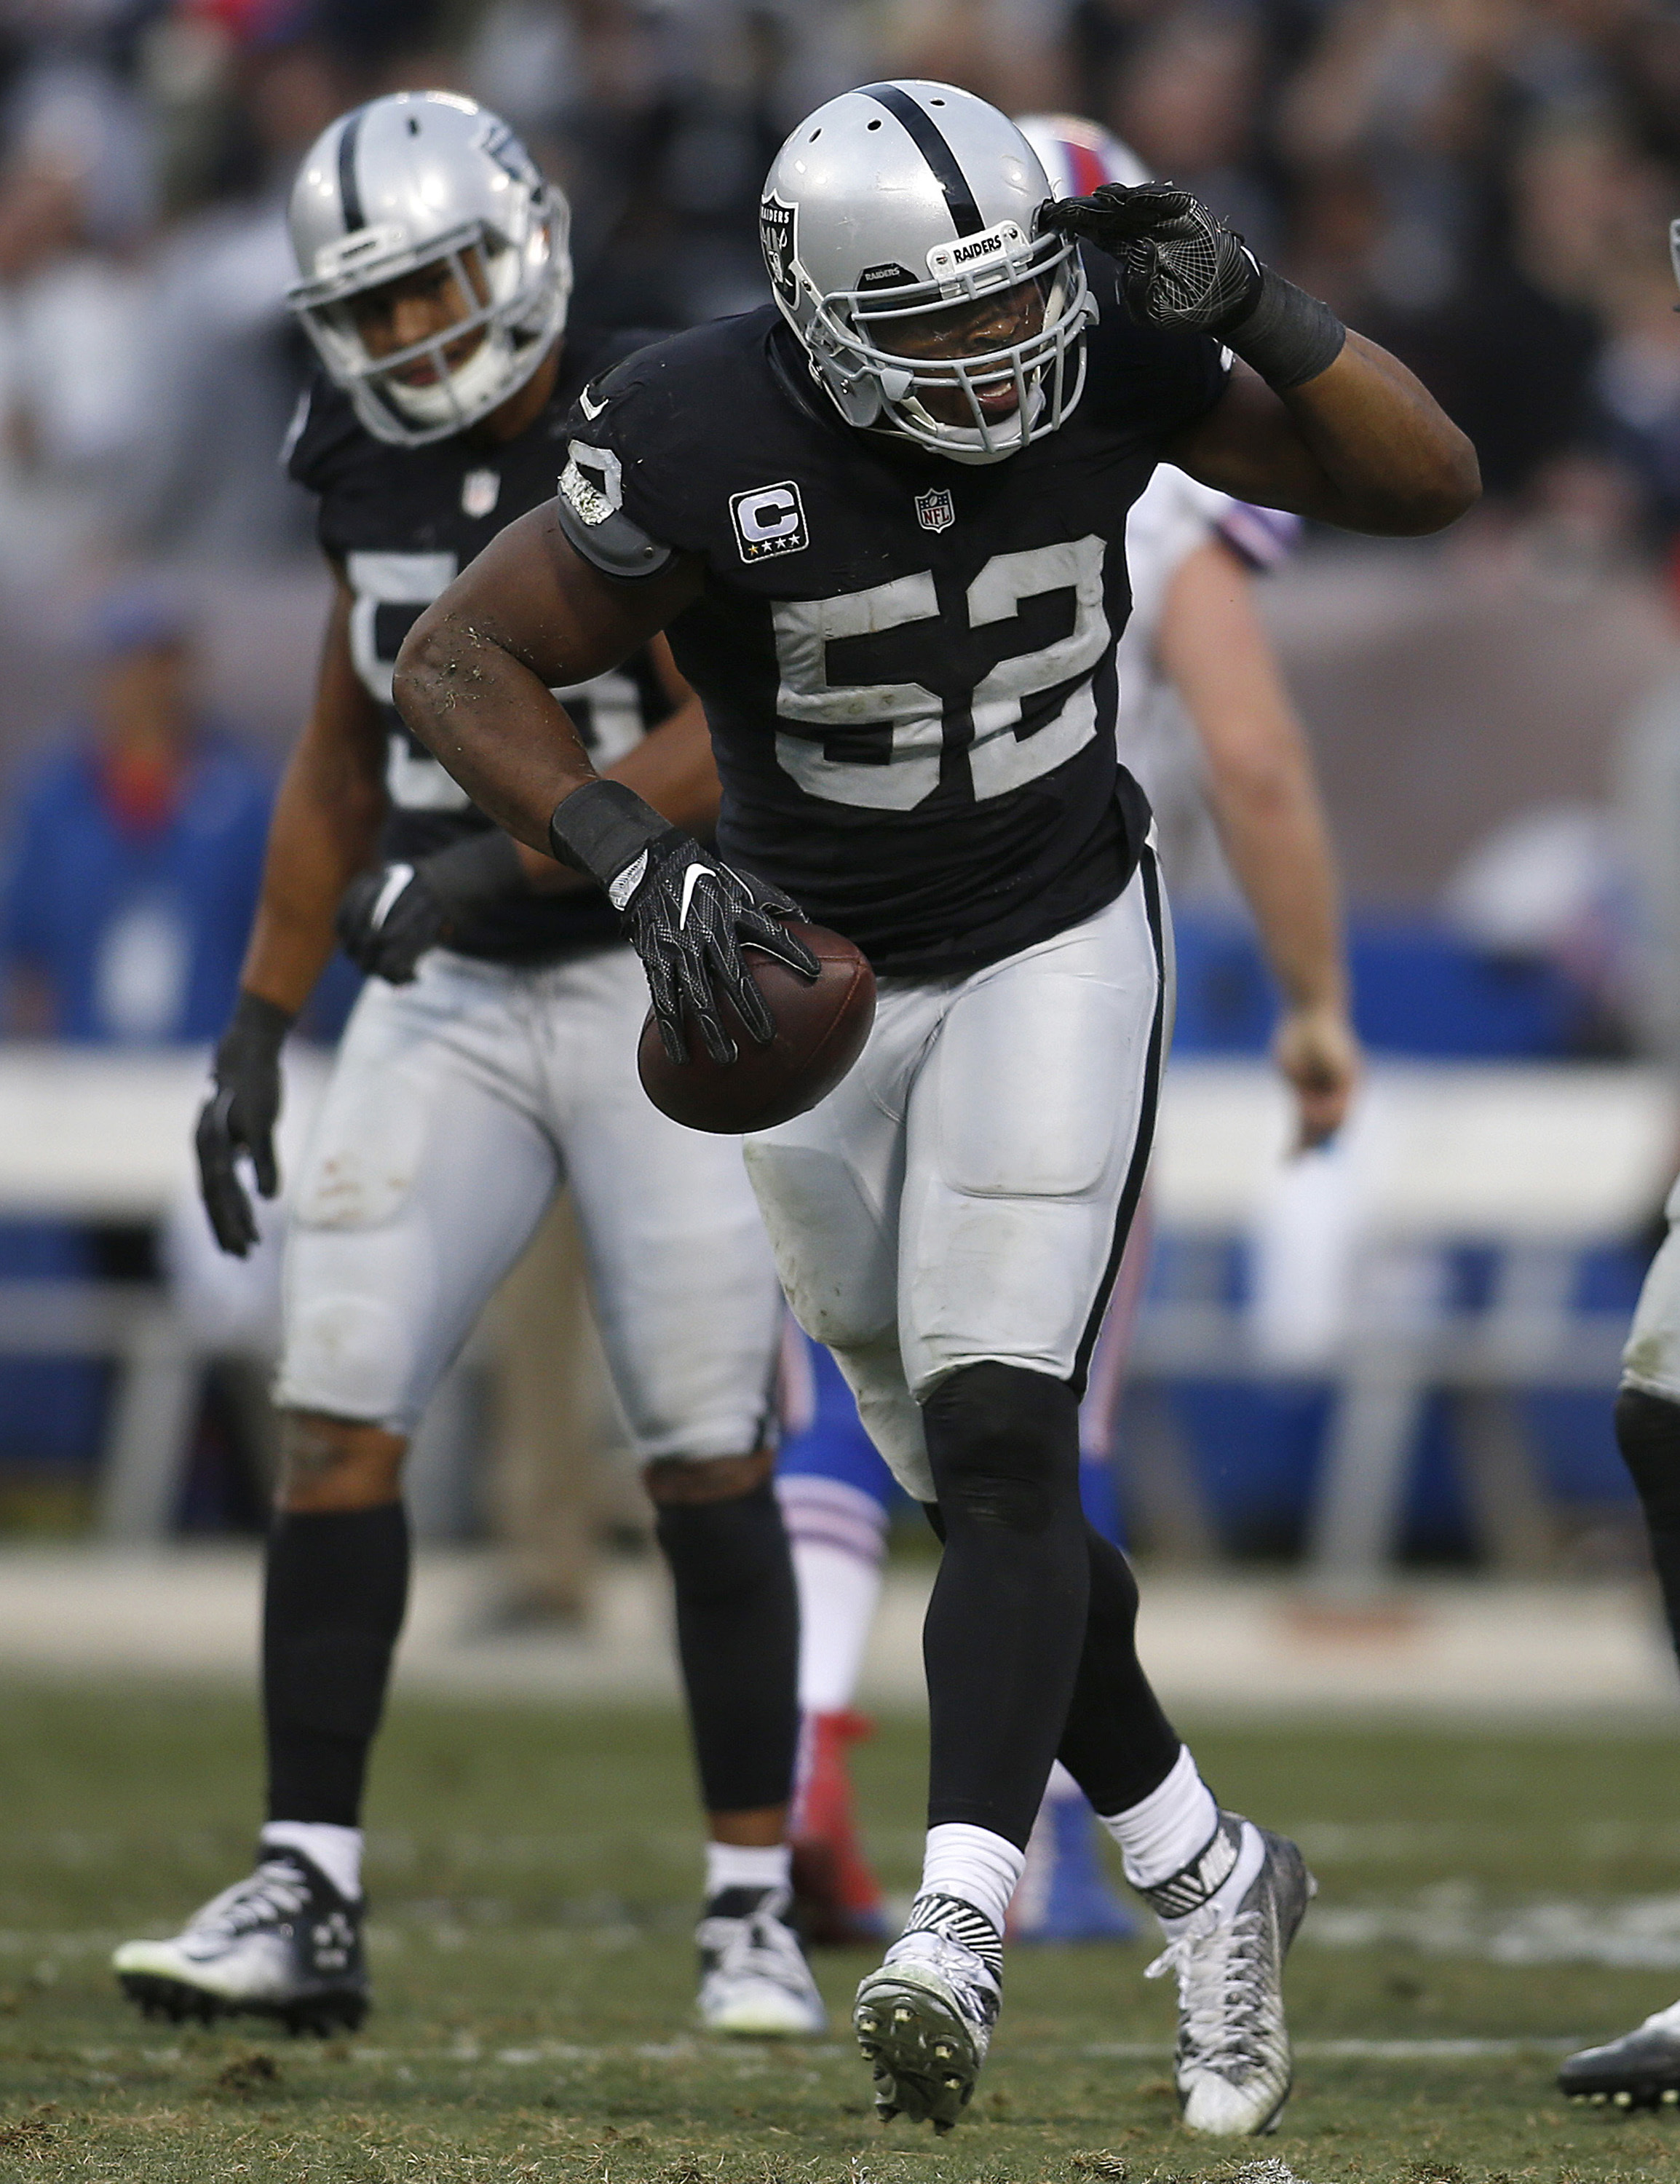 Oakland Raiders defensive end Khalil Mack (52) celebrates after recovering a fumble during the second half of an NFL football game against the Buffalo Bills in Oakland, Calif., Sunday, Dec. 4, 2016. The Raiders won 38-24. (AP Photo/D. Ross Cameron)